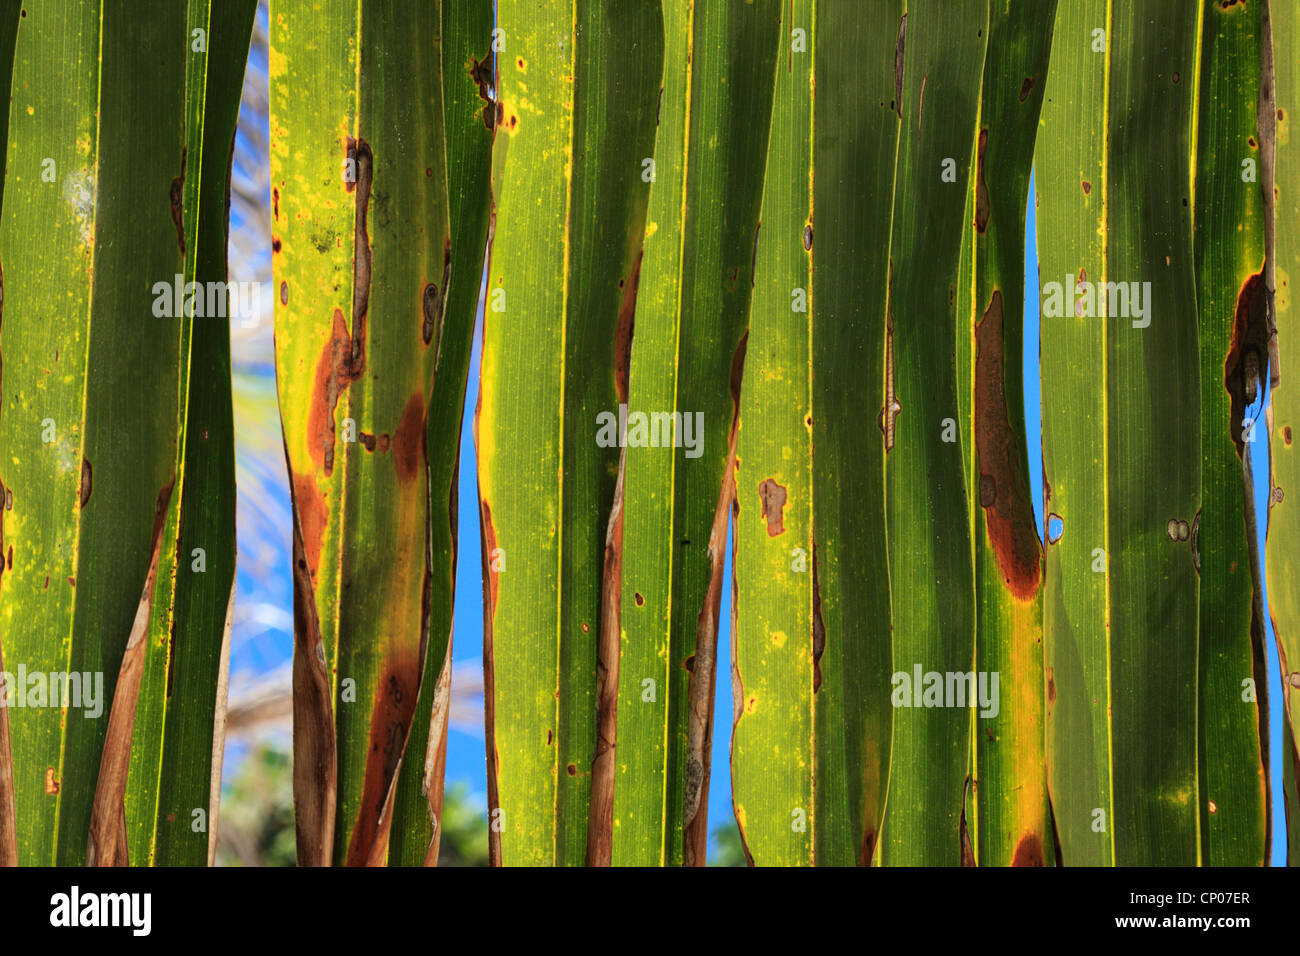 Colorful closeup detail of palm frond - Stock Image